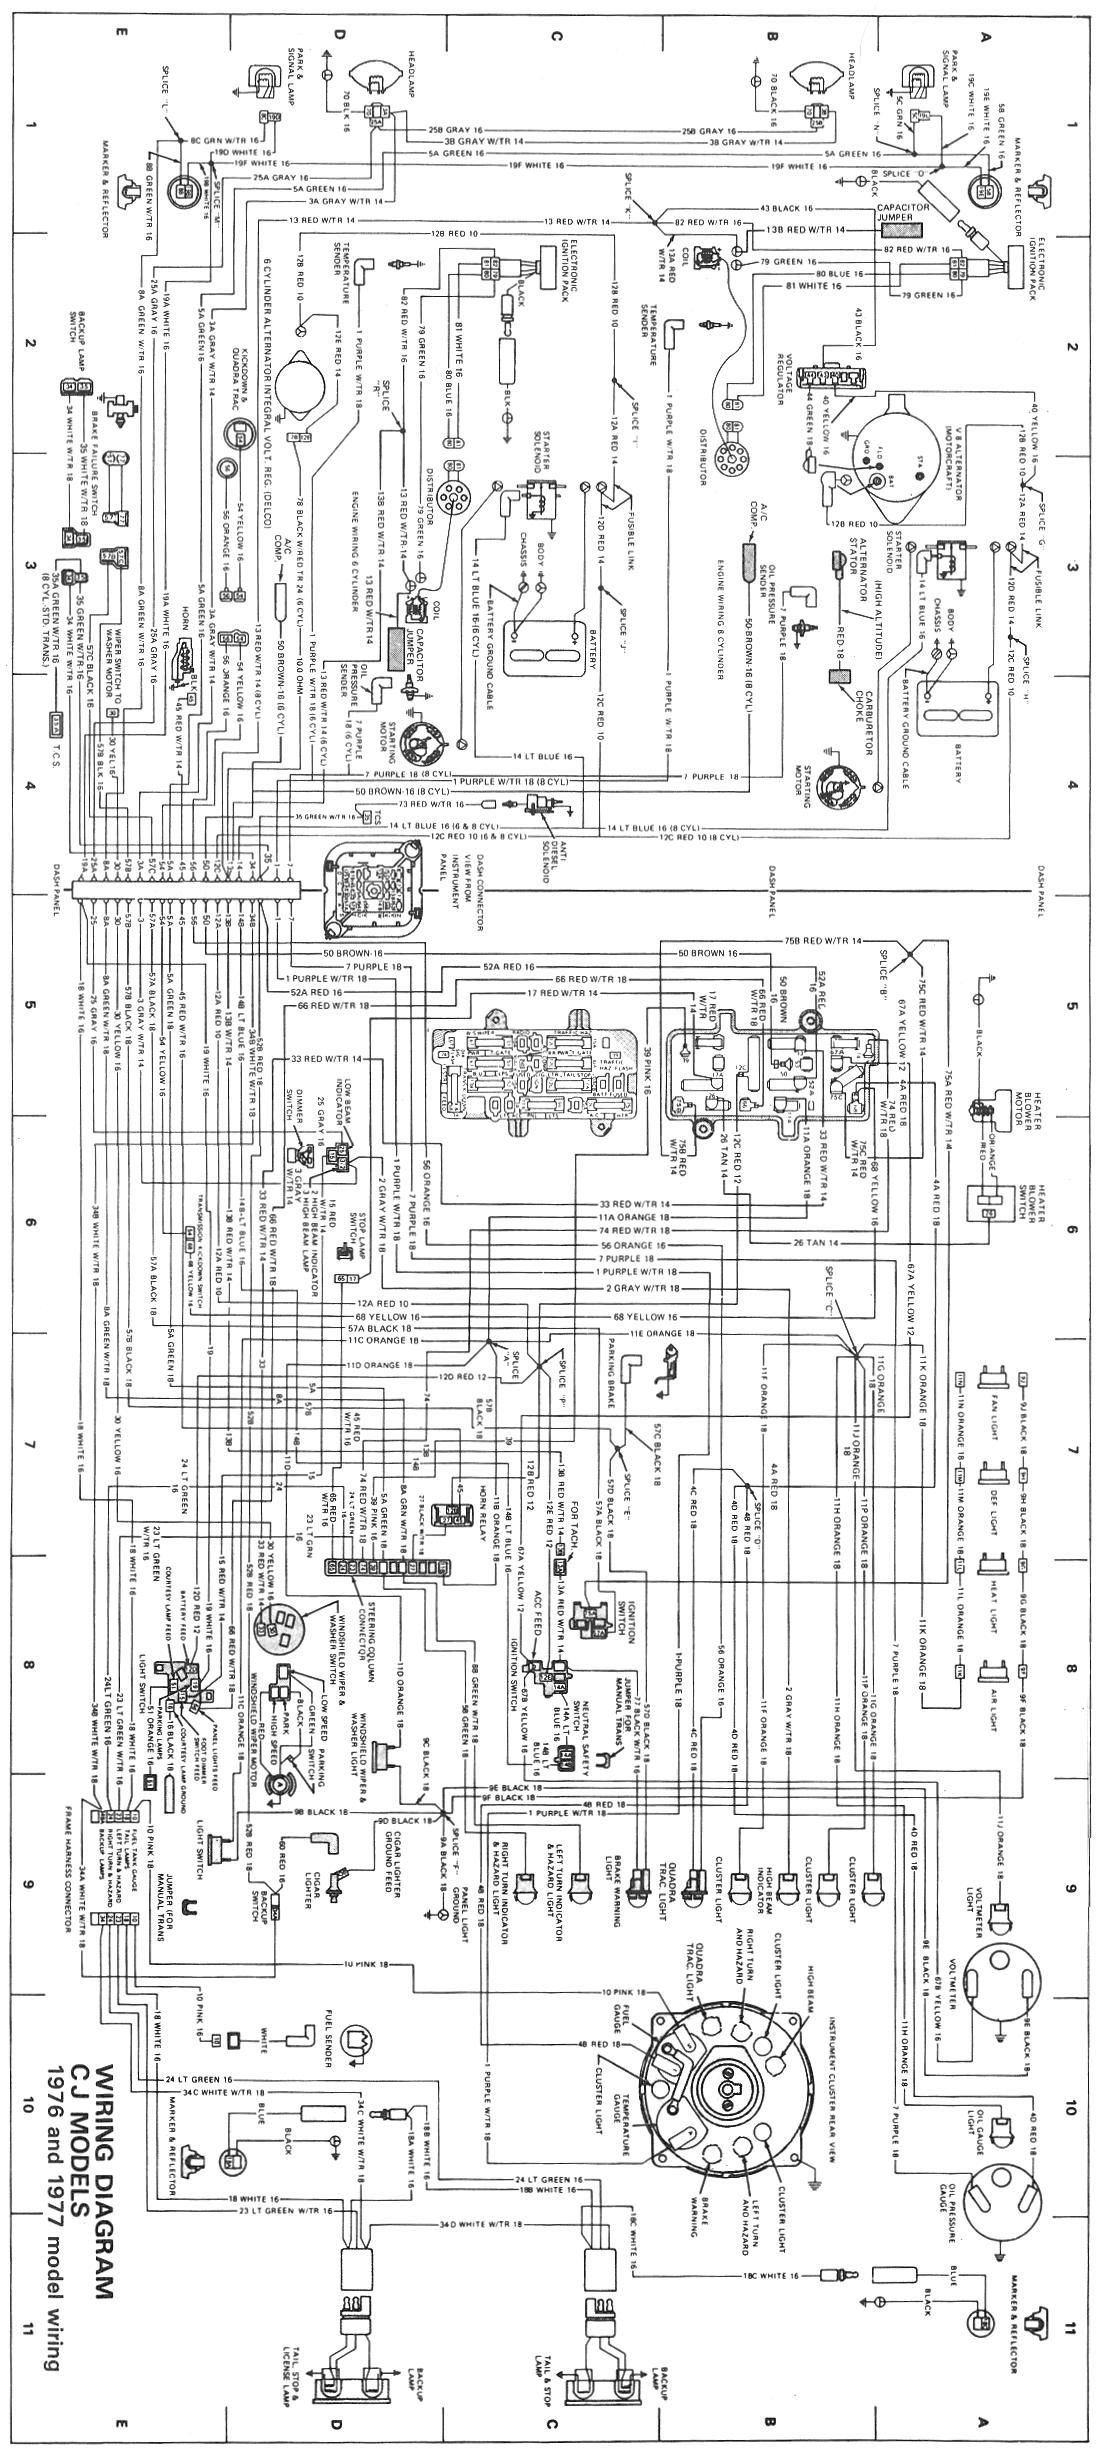 8d25ded6e3673519e155875e09844e5e cj wiring diagram 1976 1977 jpg 1,100�2,459 pixels 1976 jeep cj5 1985 jeep cj7 fuse box diagram at couponss.co